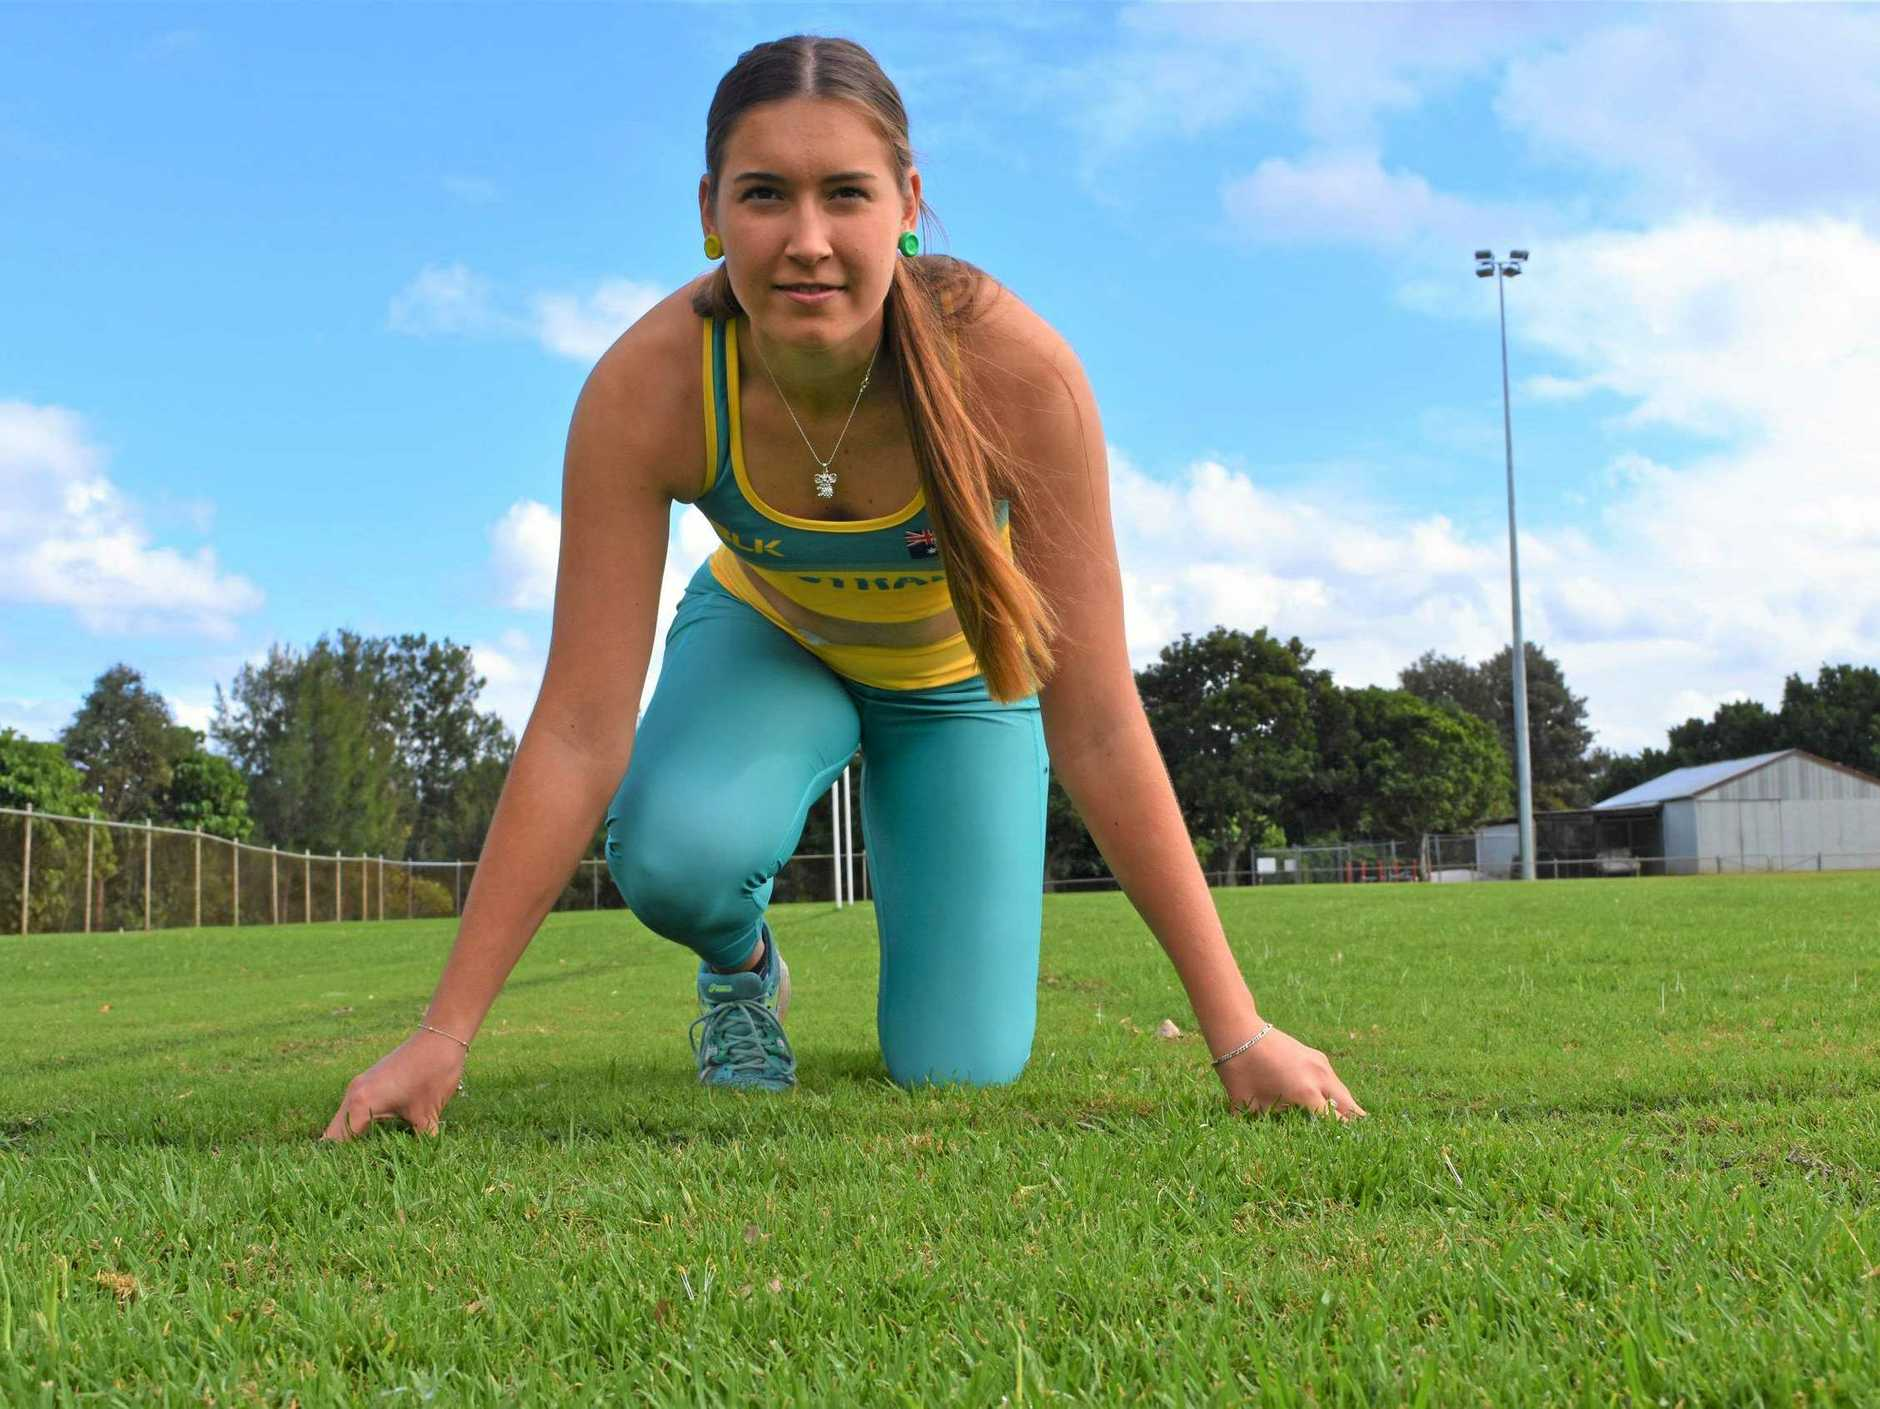 Gympie athletics - Chantelle Chippindall focused on getting to the international stage at Worlds in 2020.